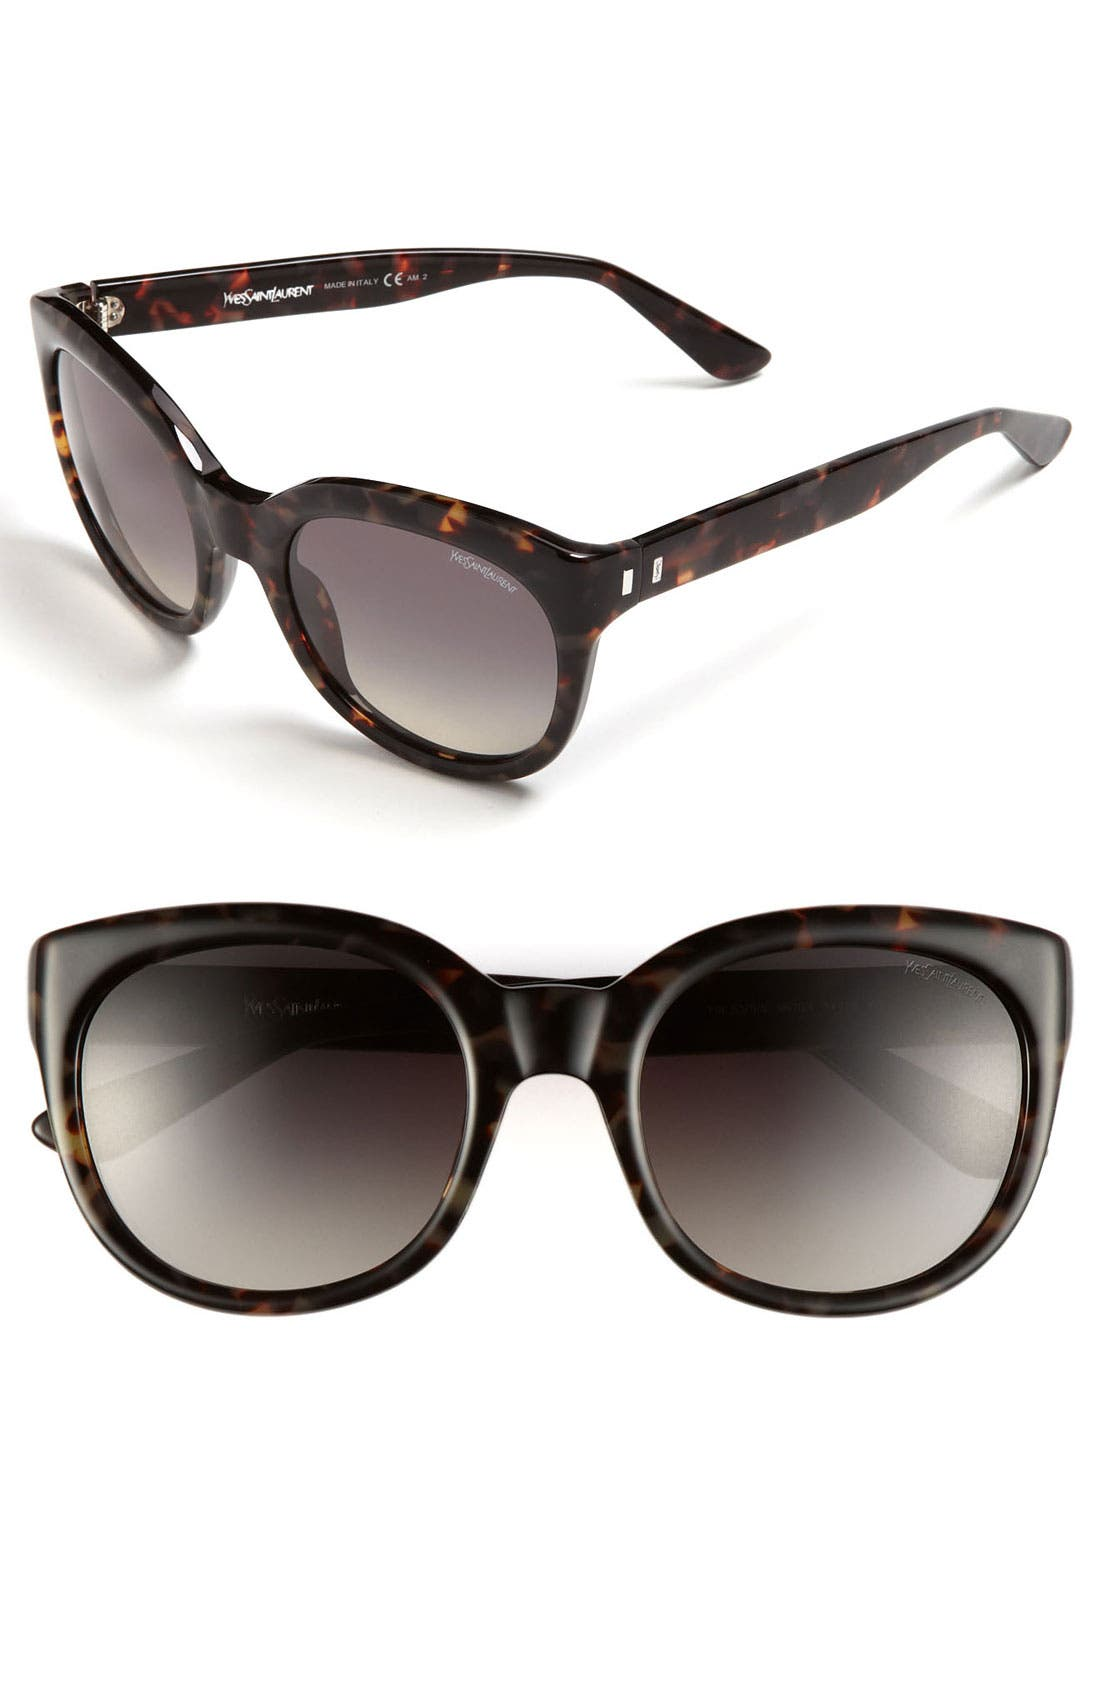 Main Image - Saint Laurent Cat's Eye Sunglasses